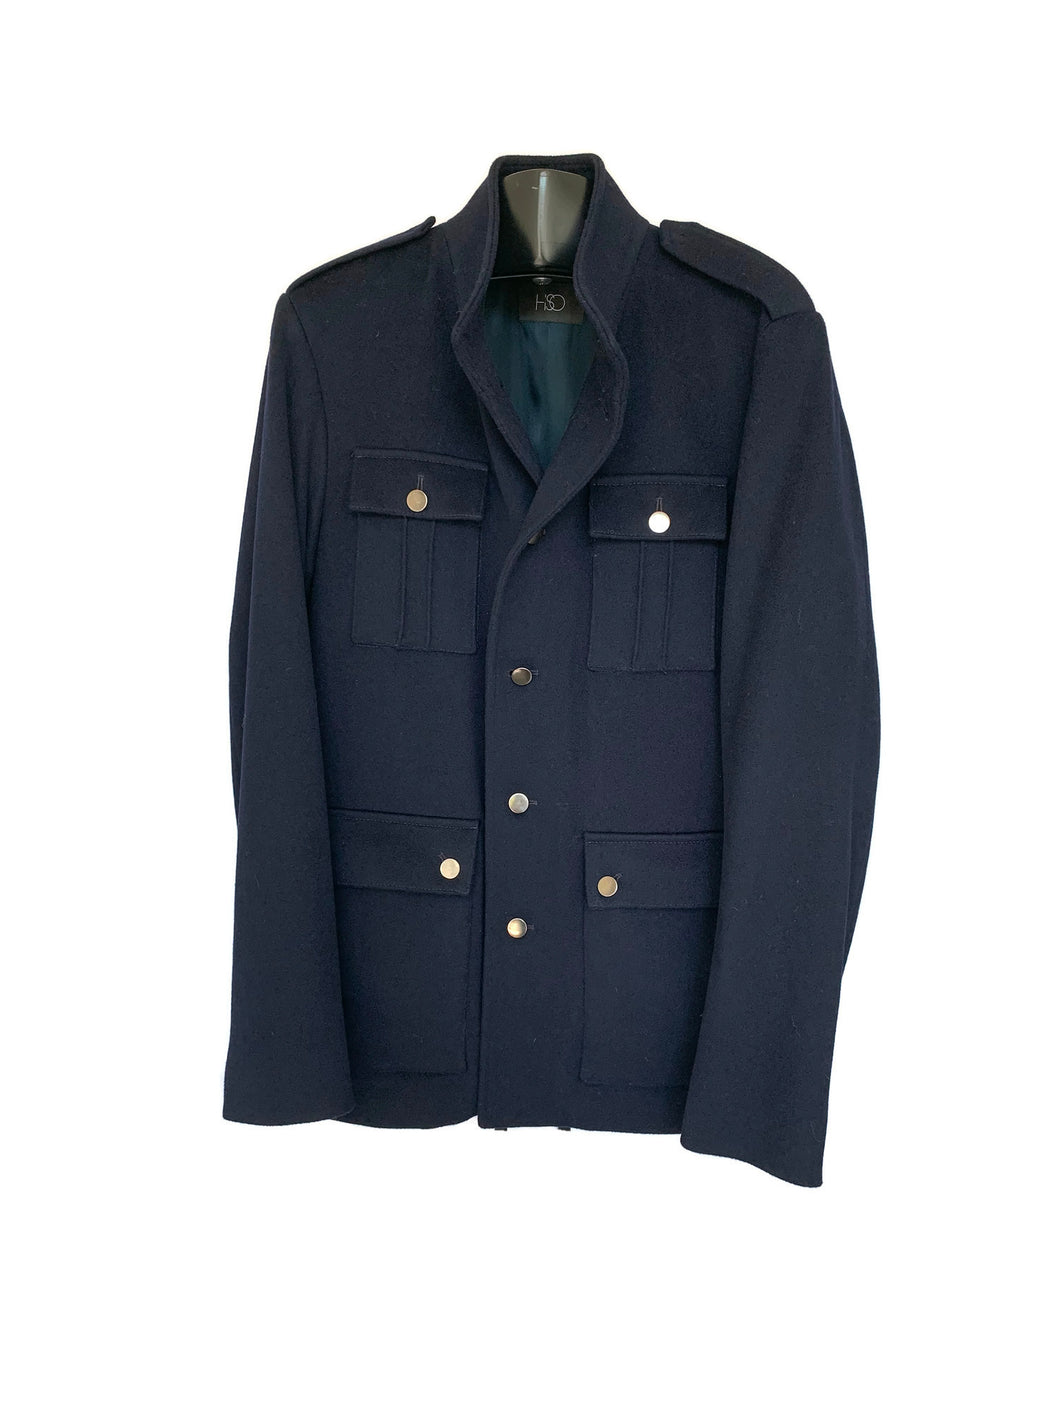 Men's Navy Wool Military Jacket